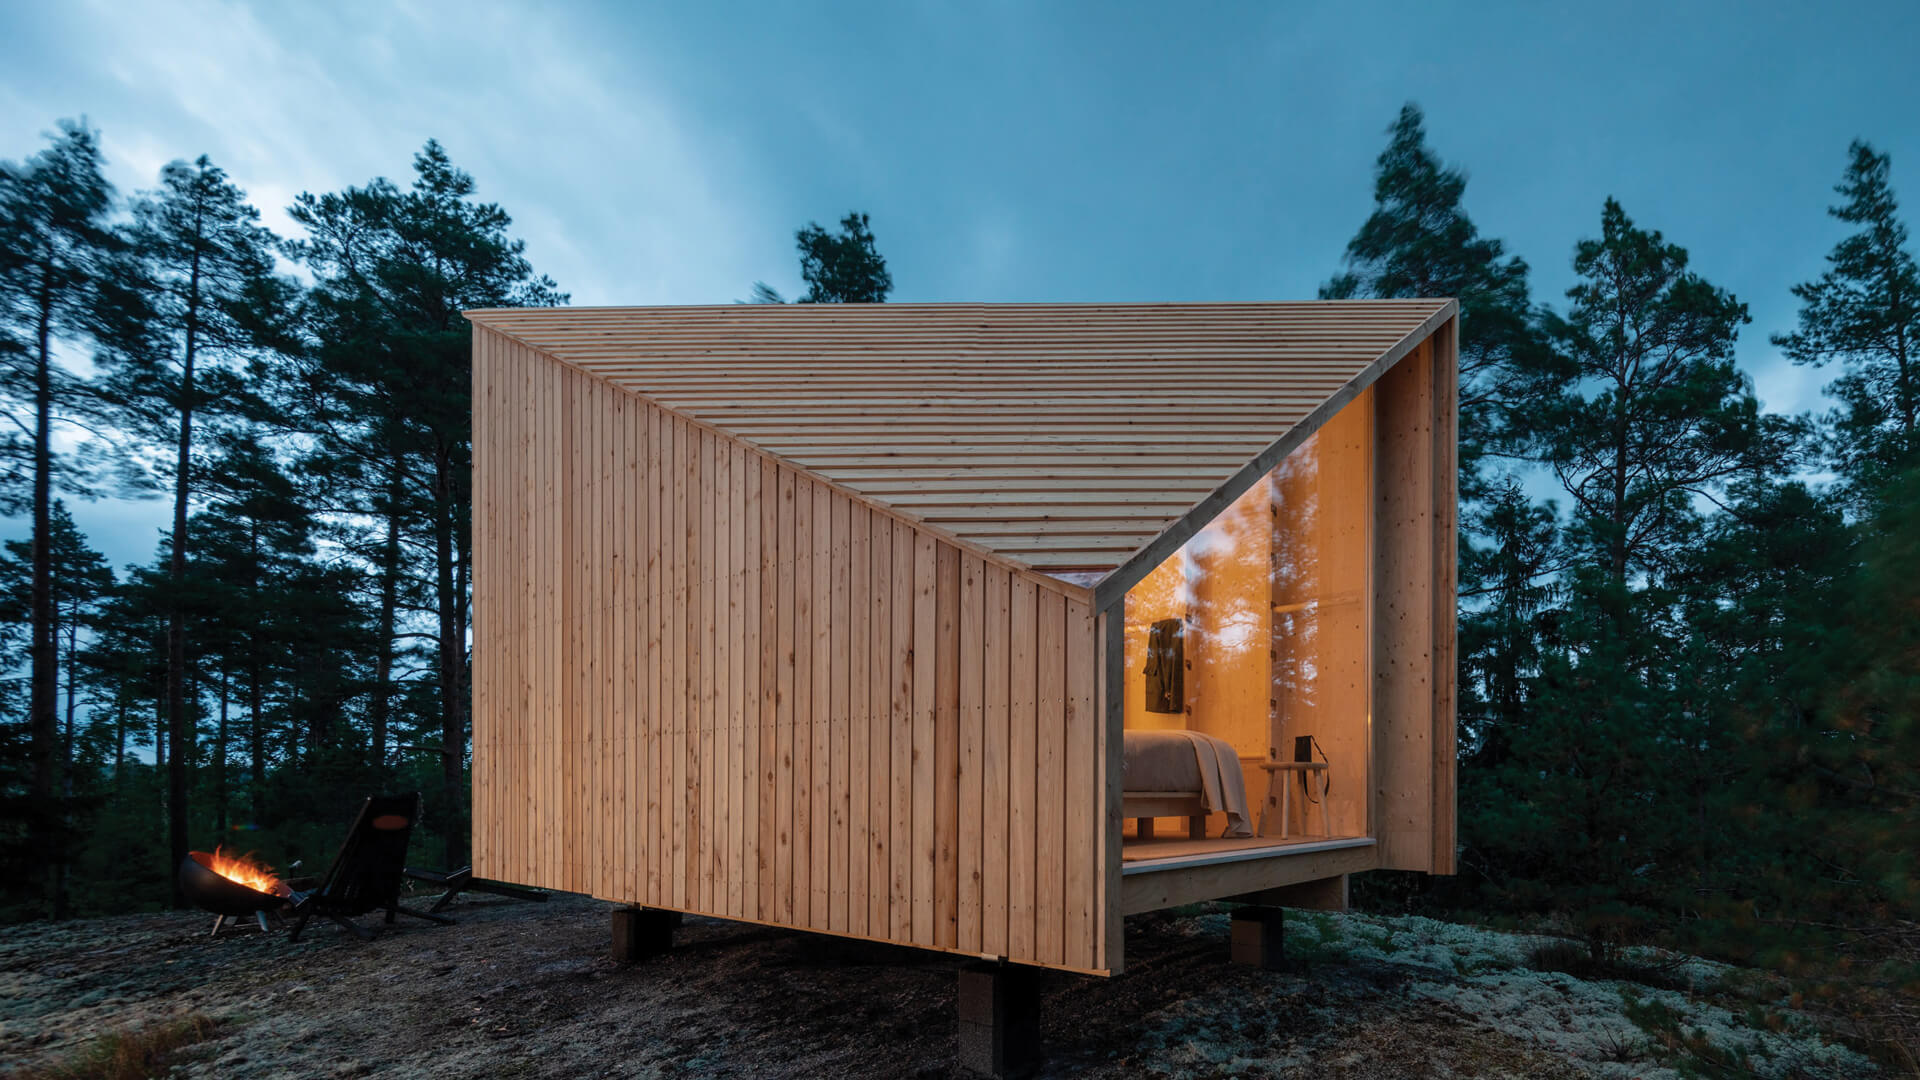 Studio Puisto's lightweight prefab cabin Space of Mind comes with modular interiors